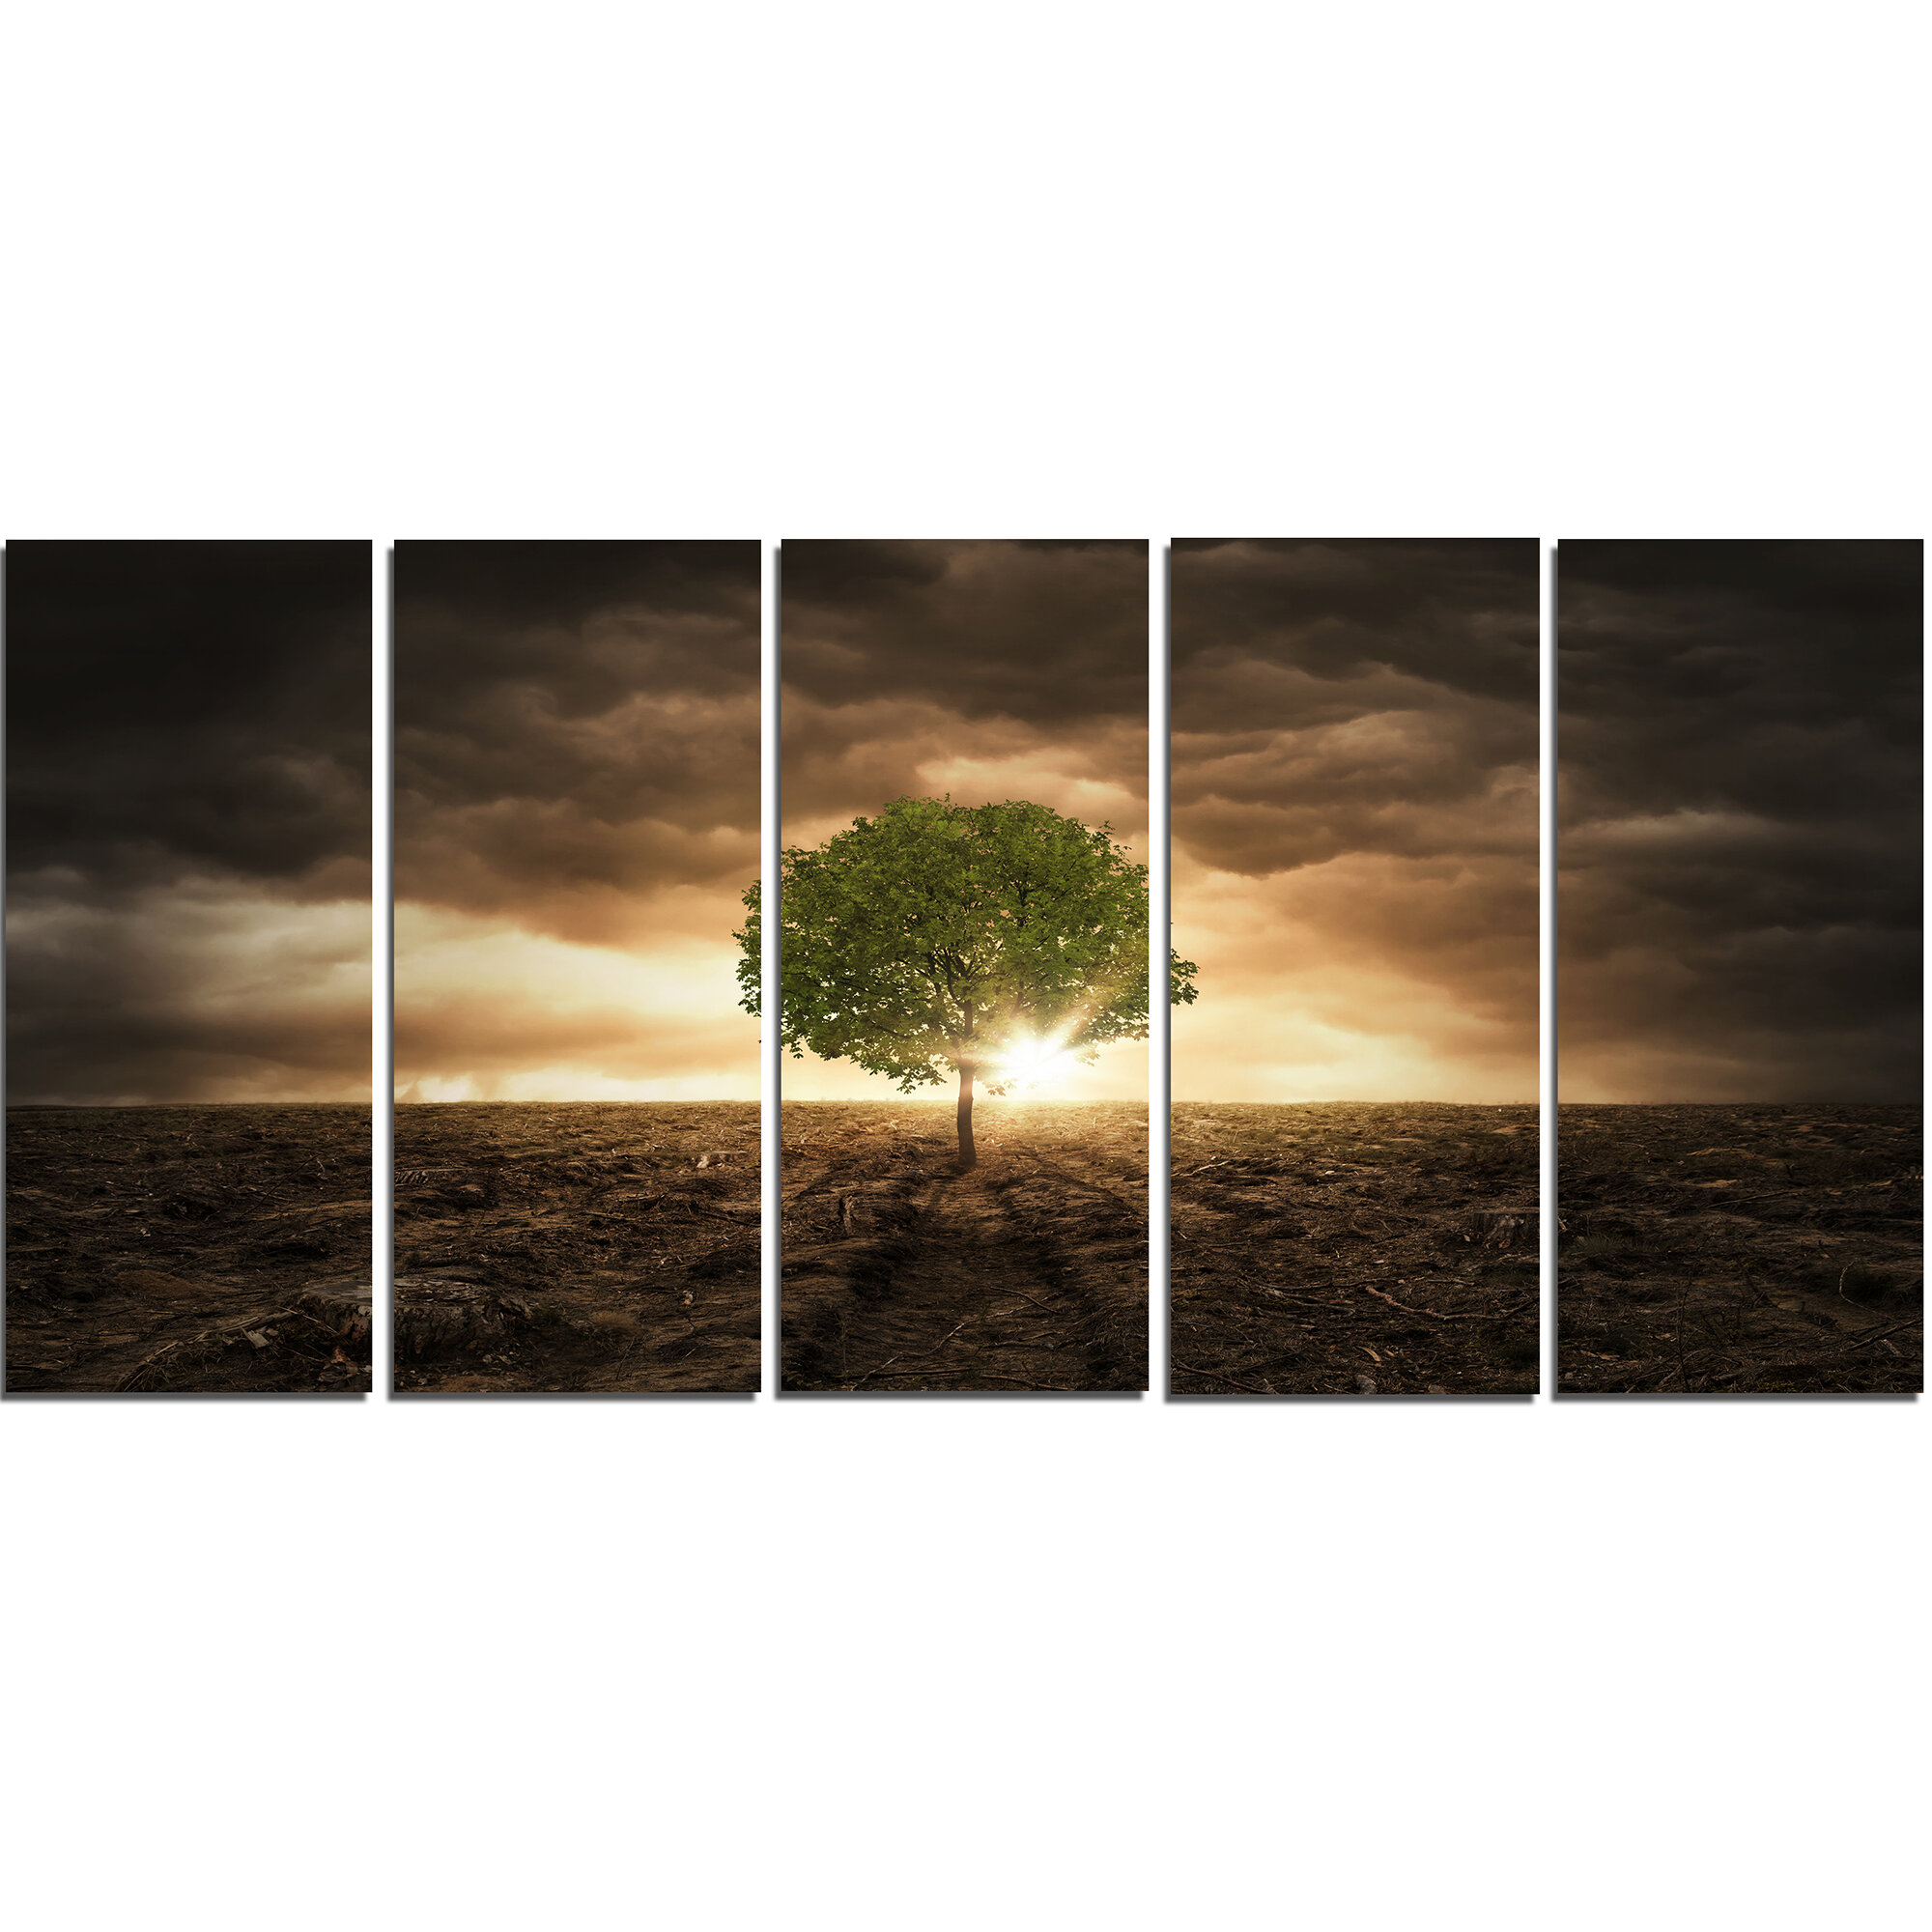 Designart Lonely Tree Under Dramatic Sky 5 Piece Wall Art On Wrapped Canvas Set Wayfair